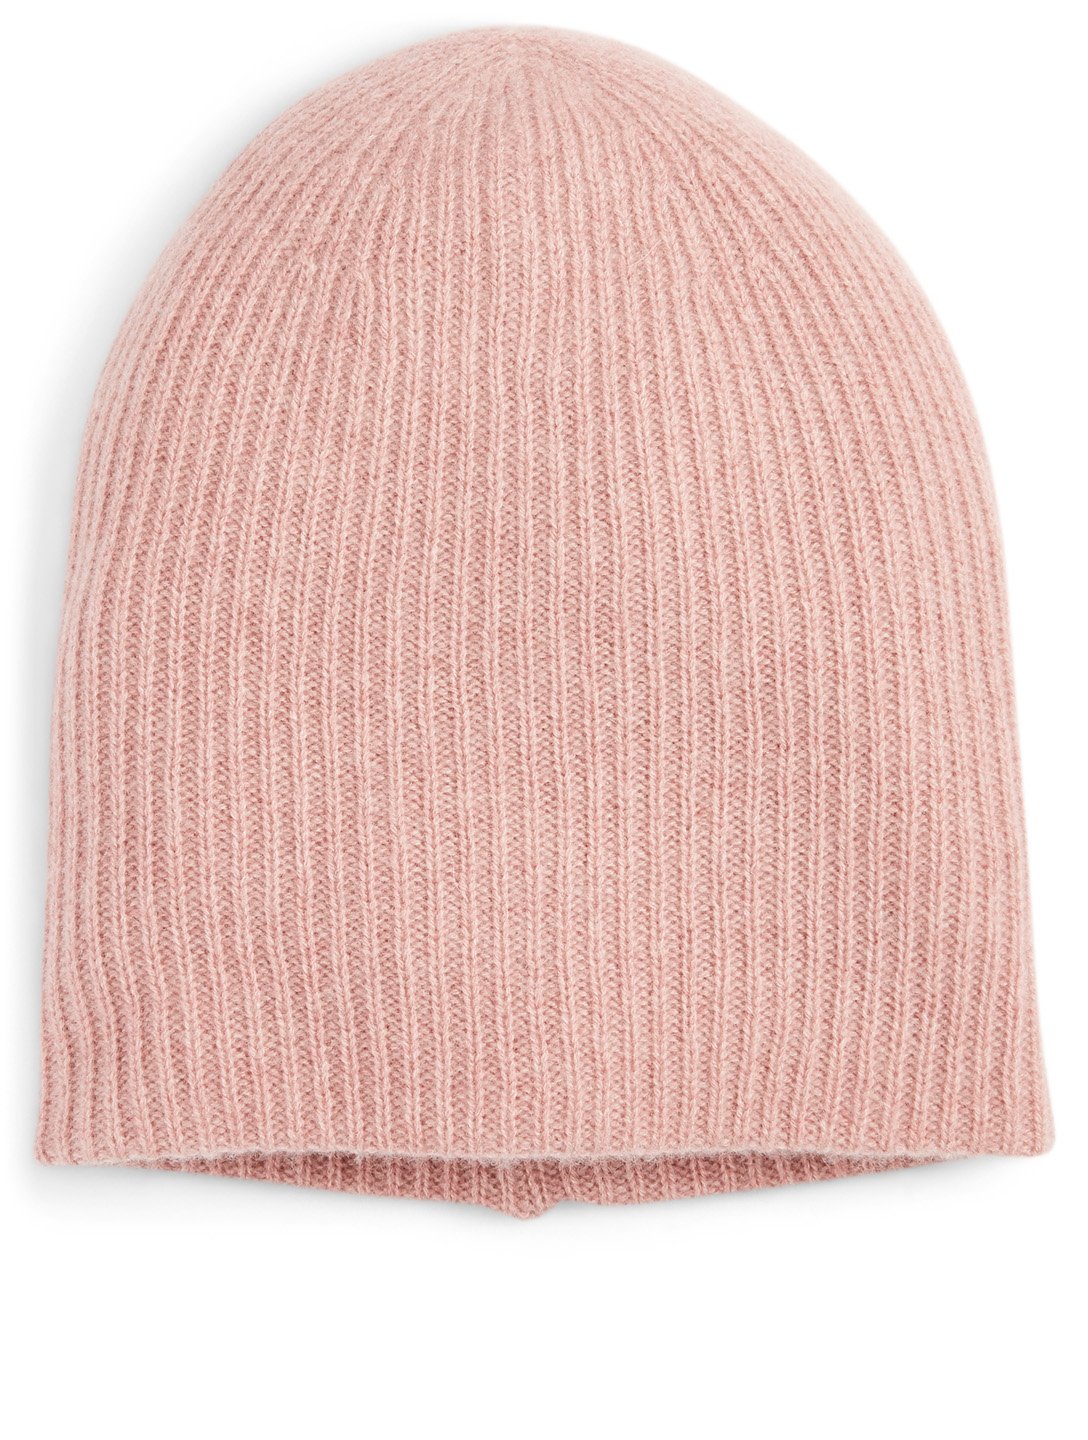 WHITE & WARREN Tuque en cachemire Collections Rose